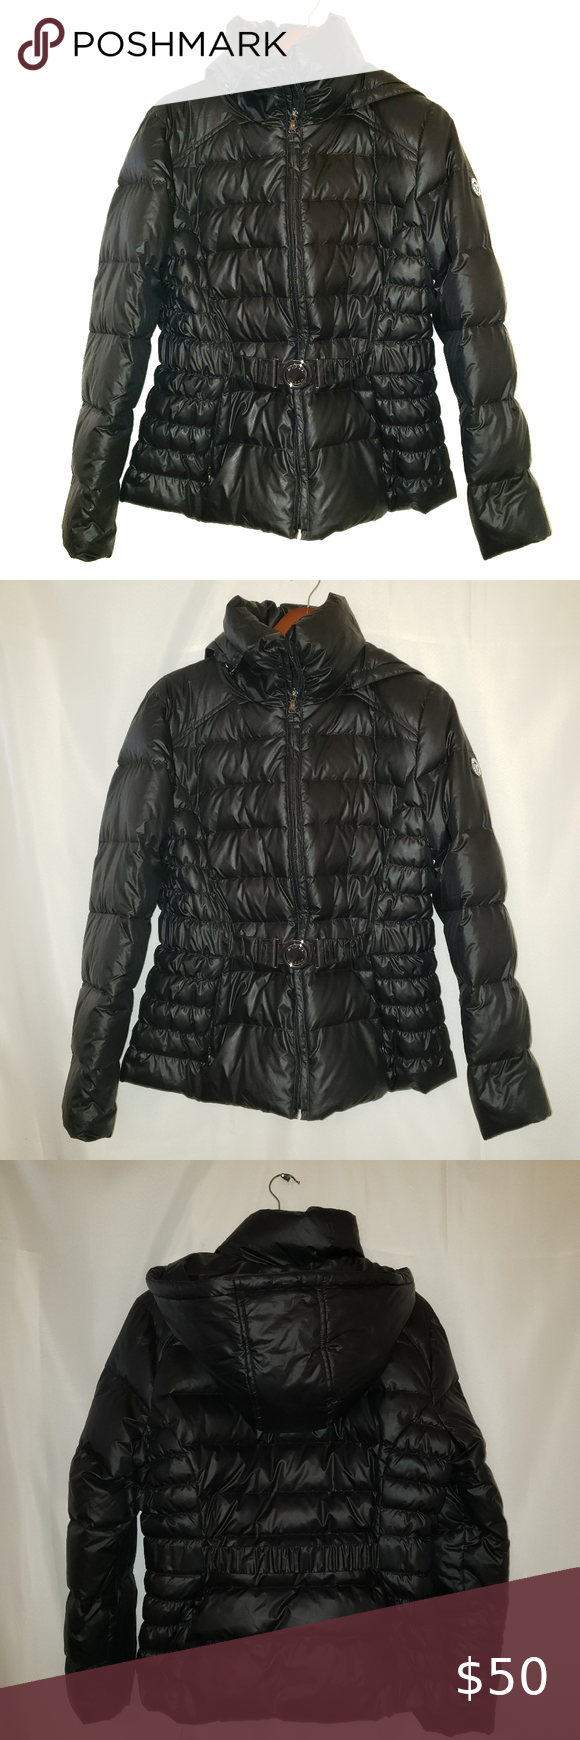 Guess Black Hooded Puffer Jacket Size Xl In 2021 Women S Puffer Coats Jackets Women Hooded Jacket [ 1740 x 580 Pixel ]